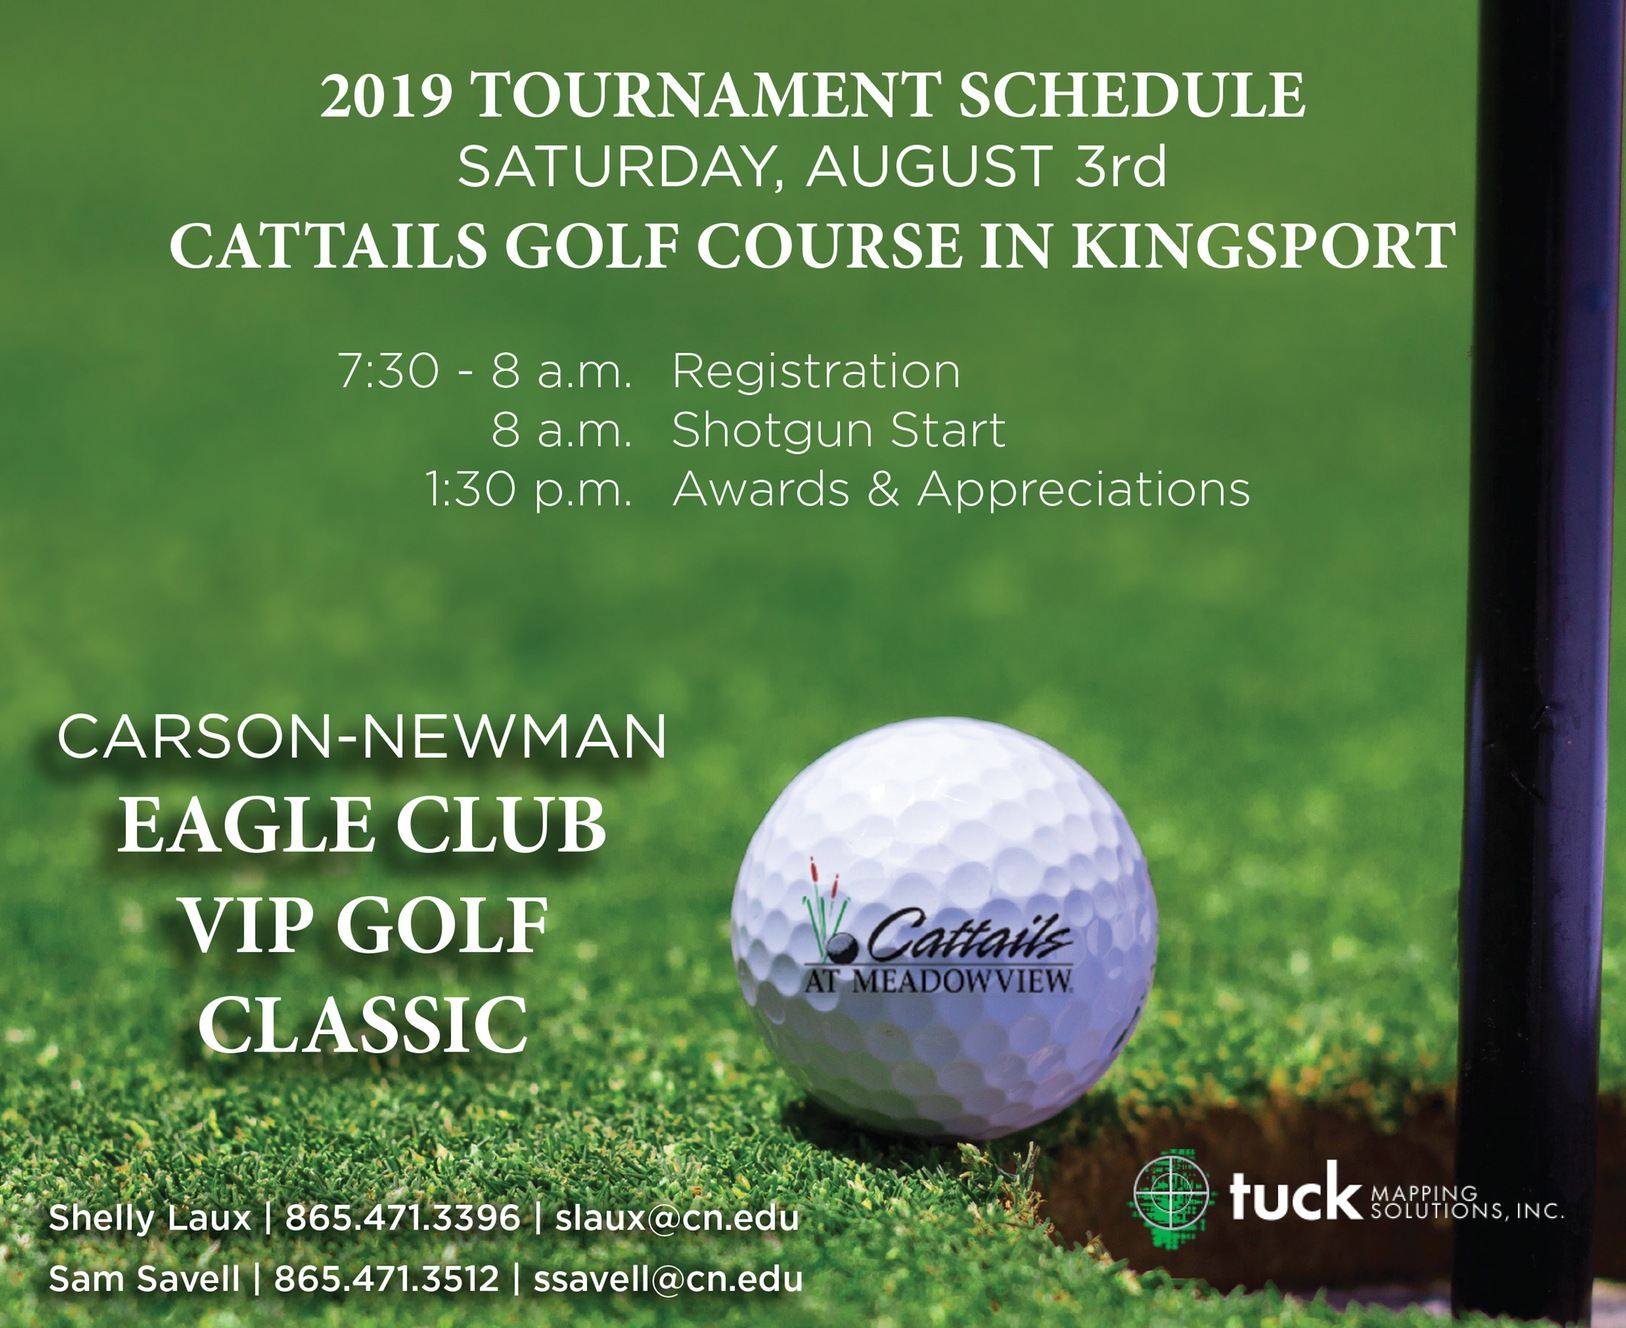 Eagle Club VIP Golf Classic set for Aug. 3 in Kingsport